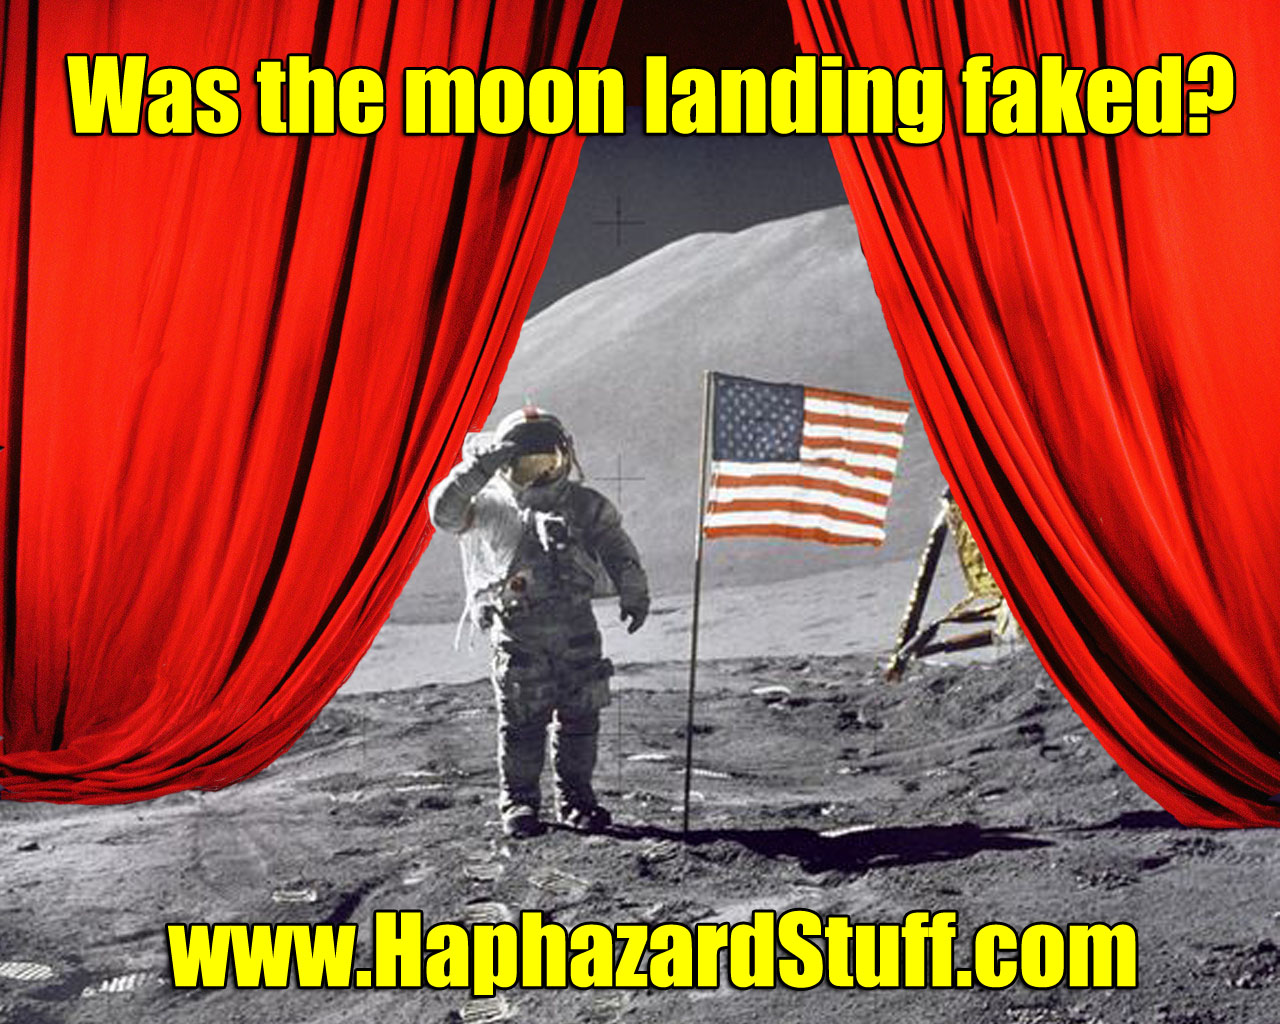 The Moon Landing - FAKED???